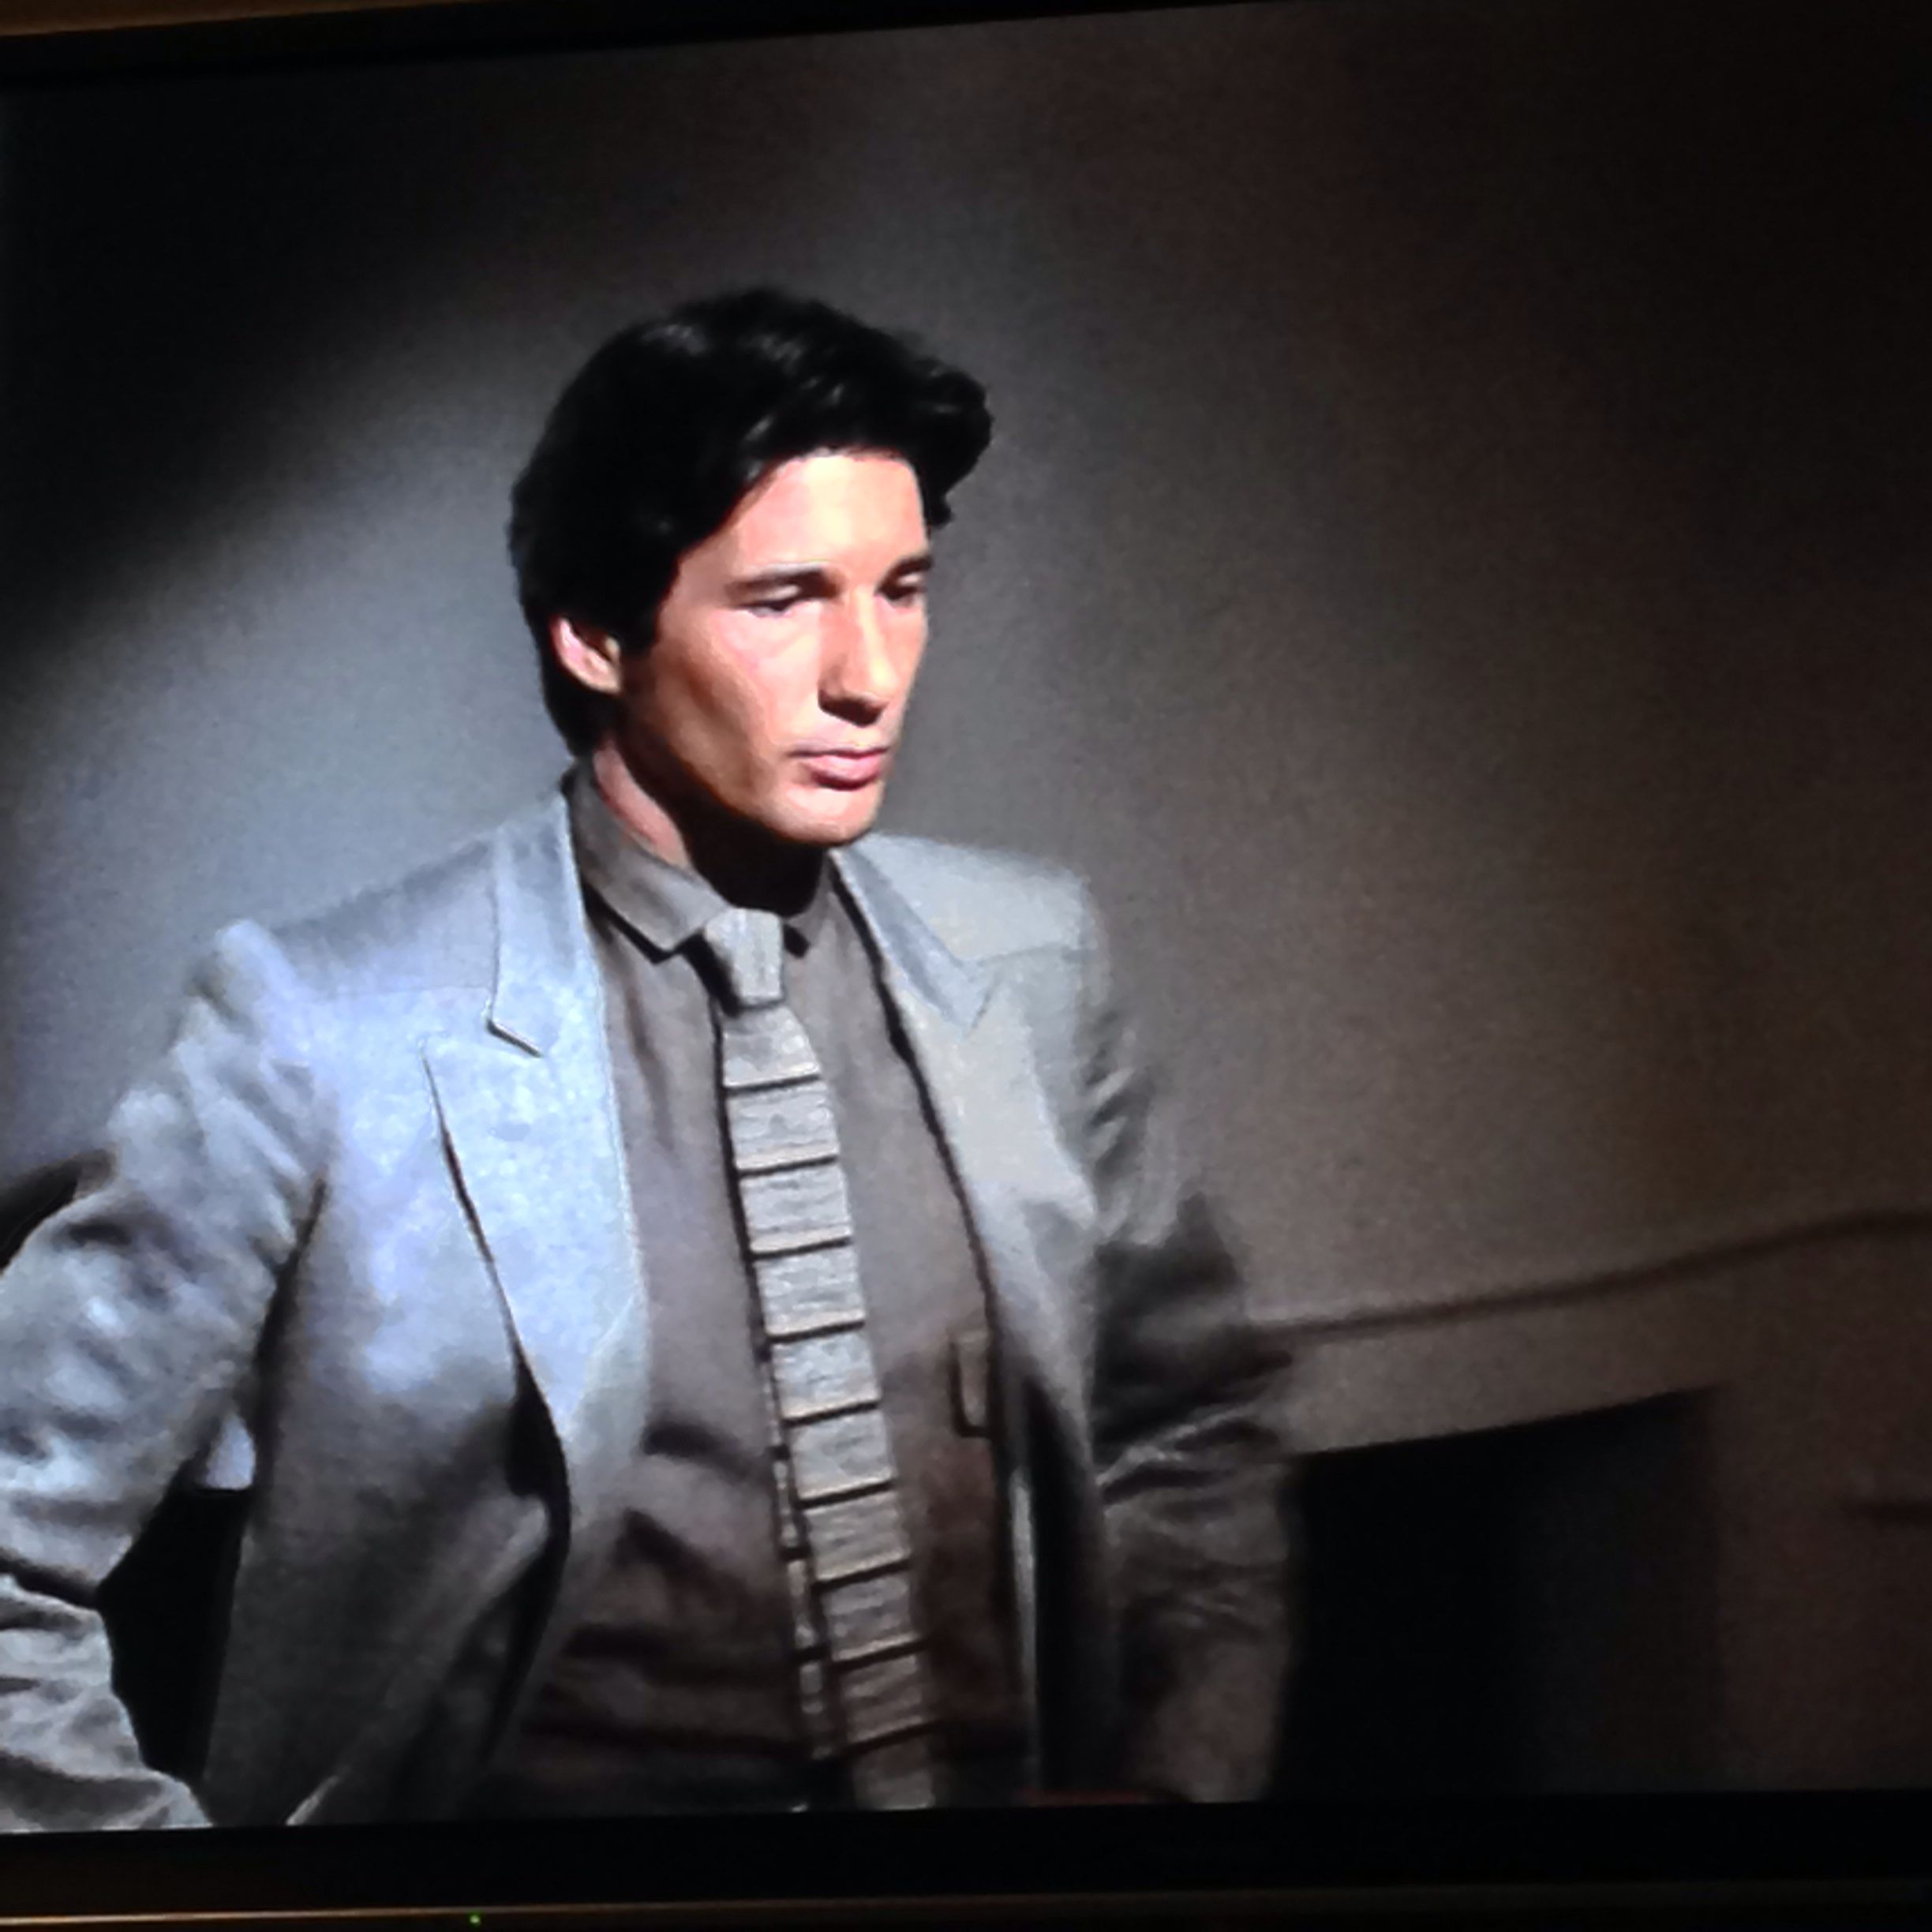 Richard gere american gigolo richard gere pinterest richard